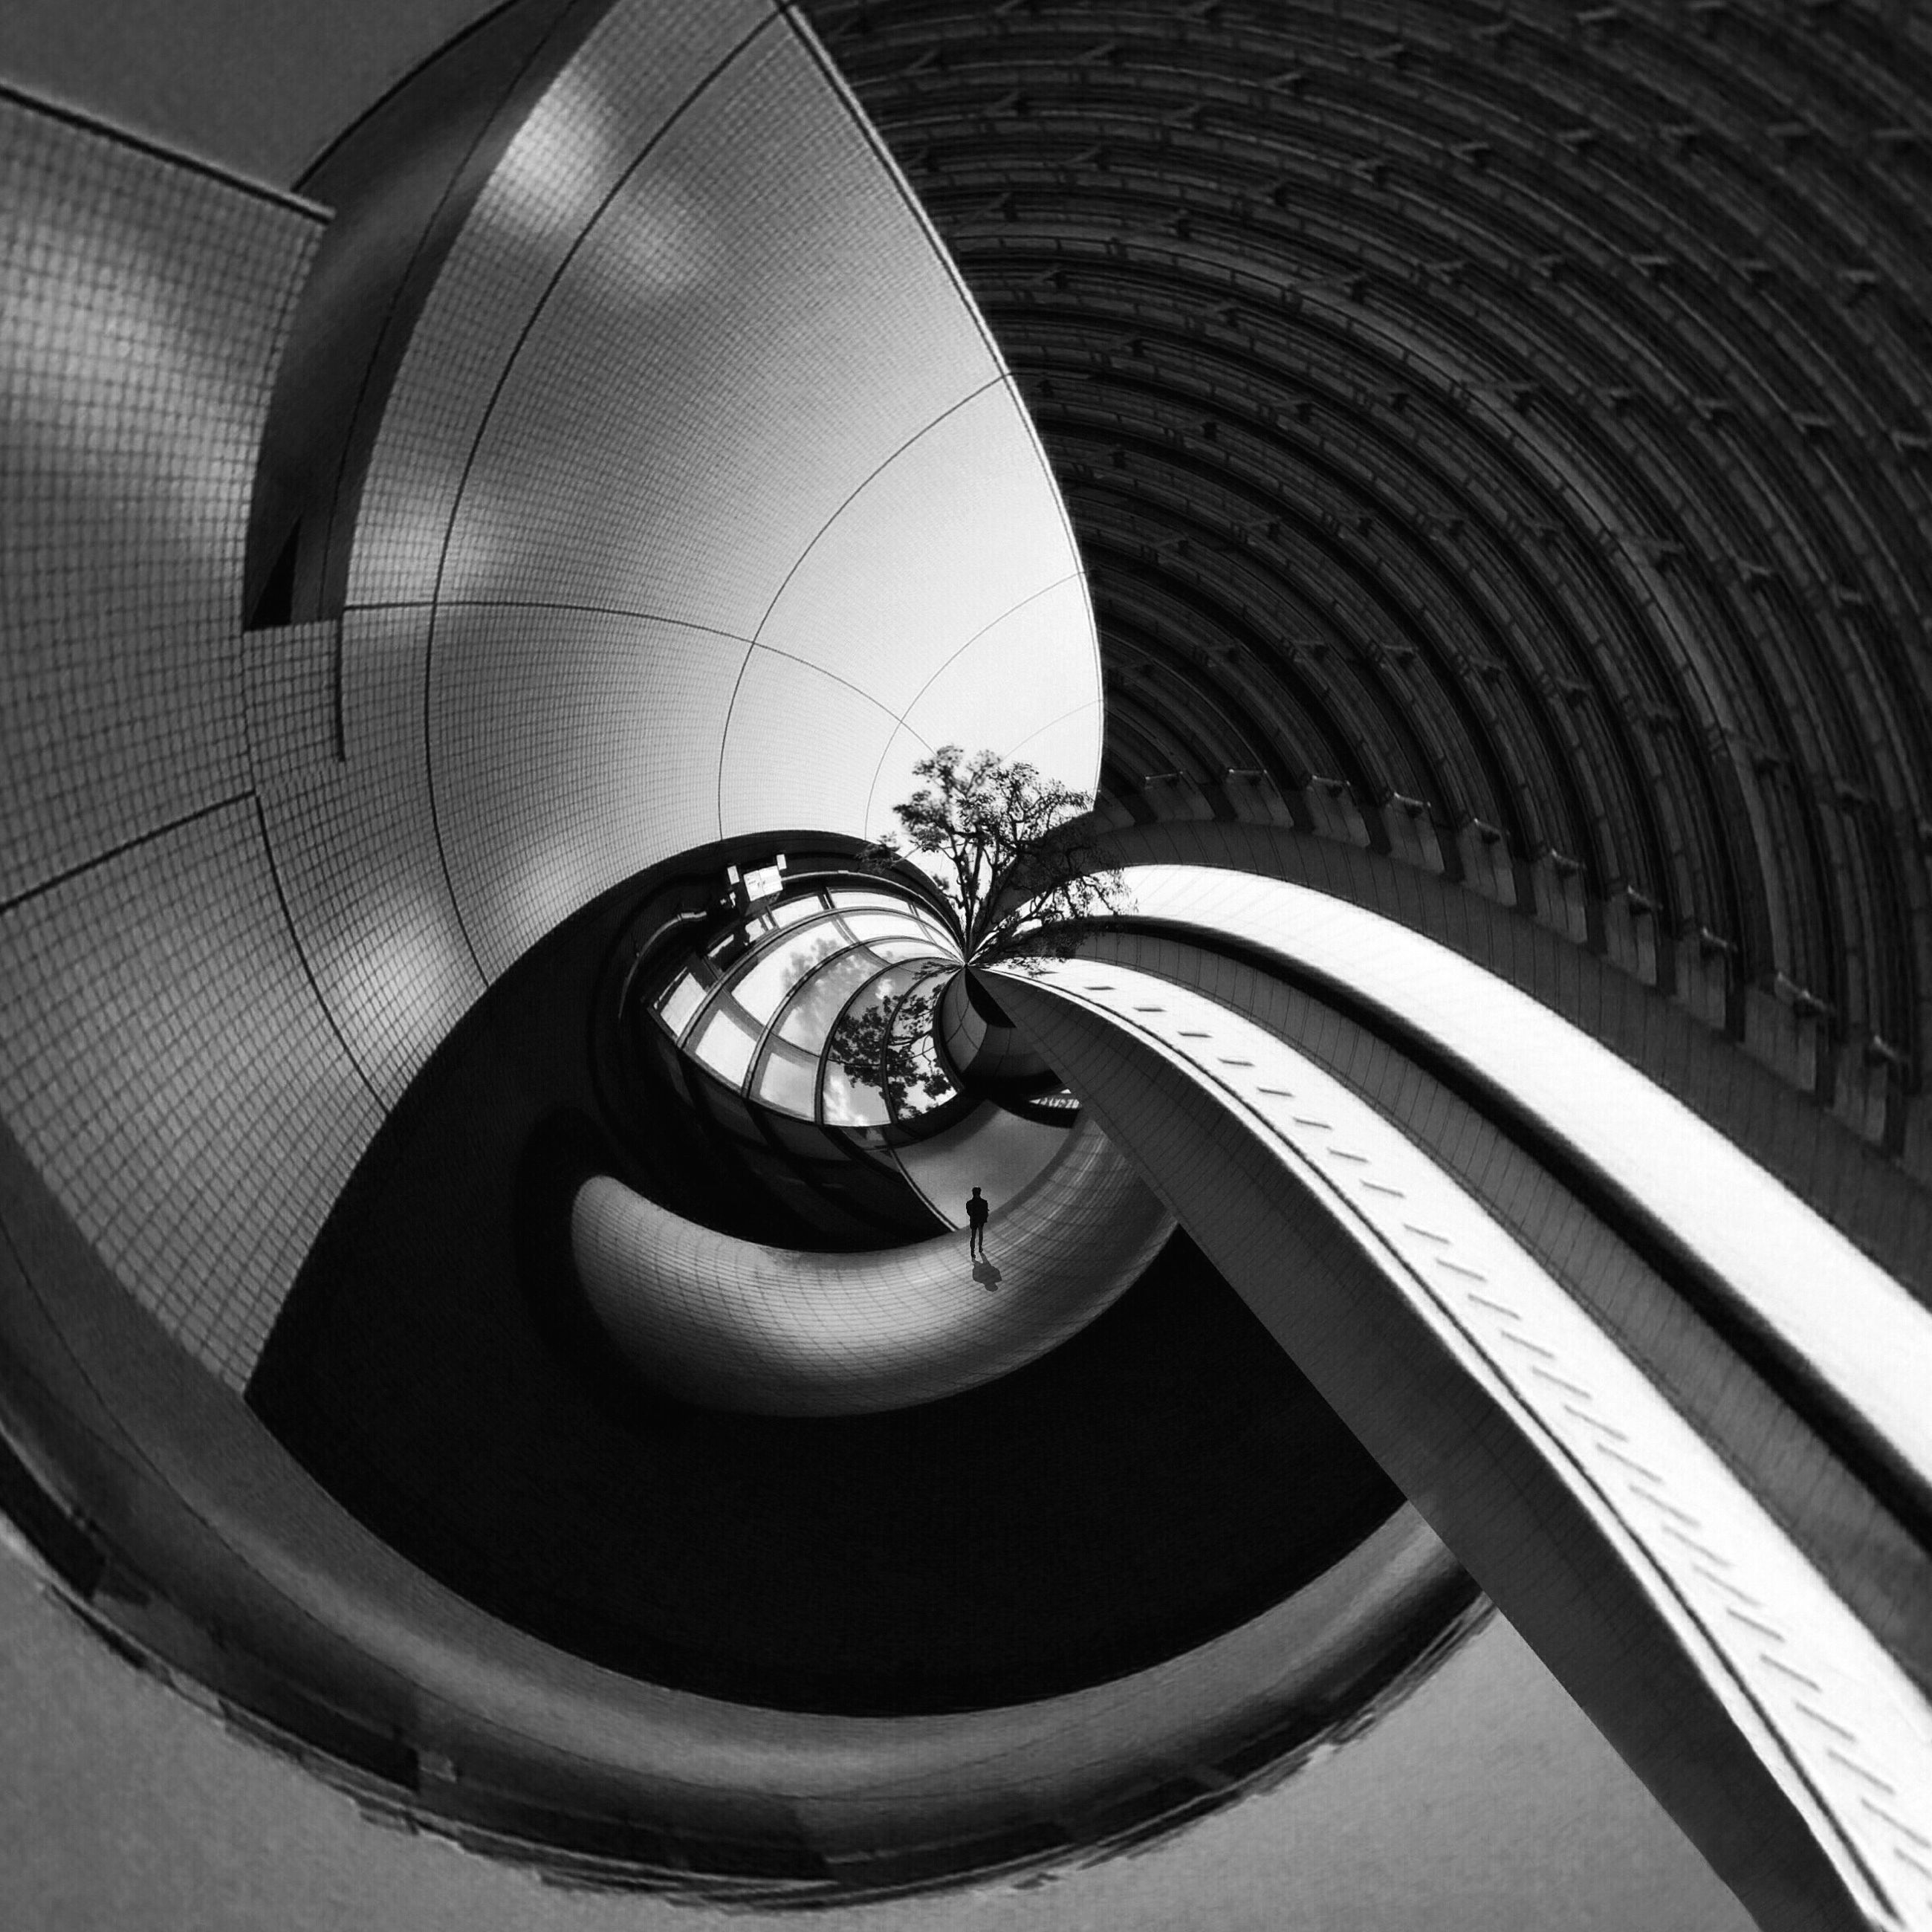 built structure, architecture, indoors, spiral, circle, spiral staircase, ceiling, modern, directly below, low angle view, pattern, staircase, railing, steps and staircases, architectural feature, steps, curve, building, geometric shape, design